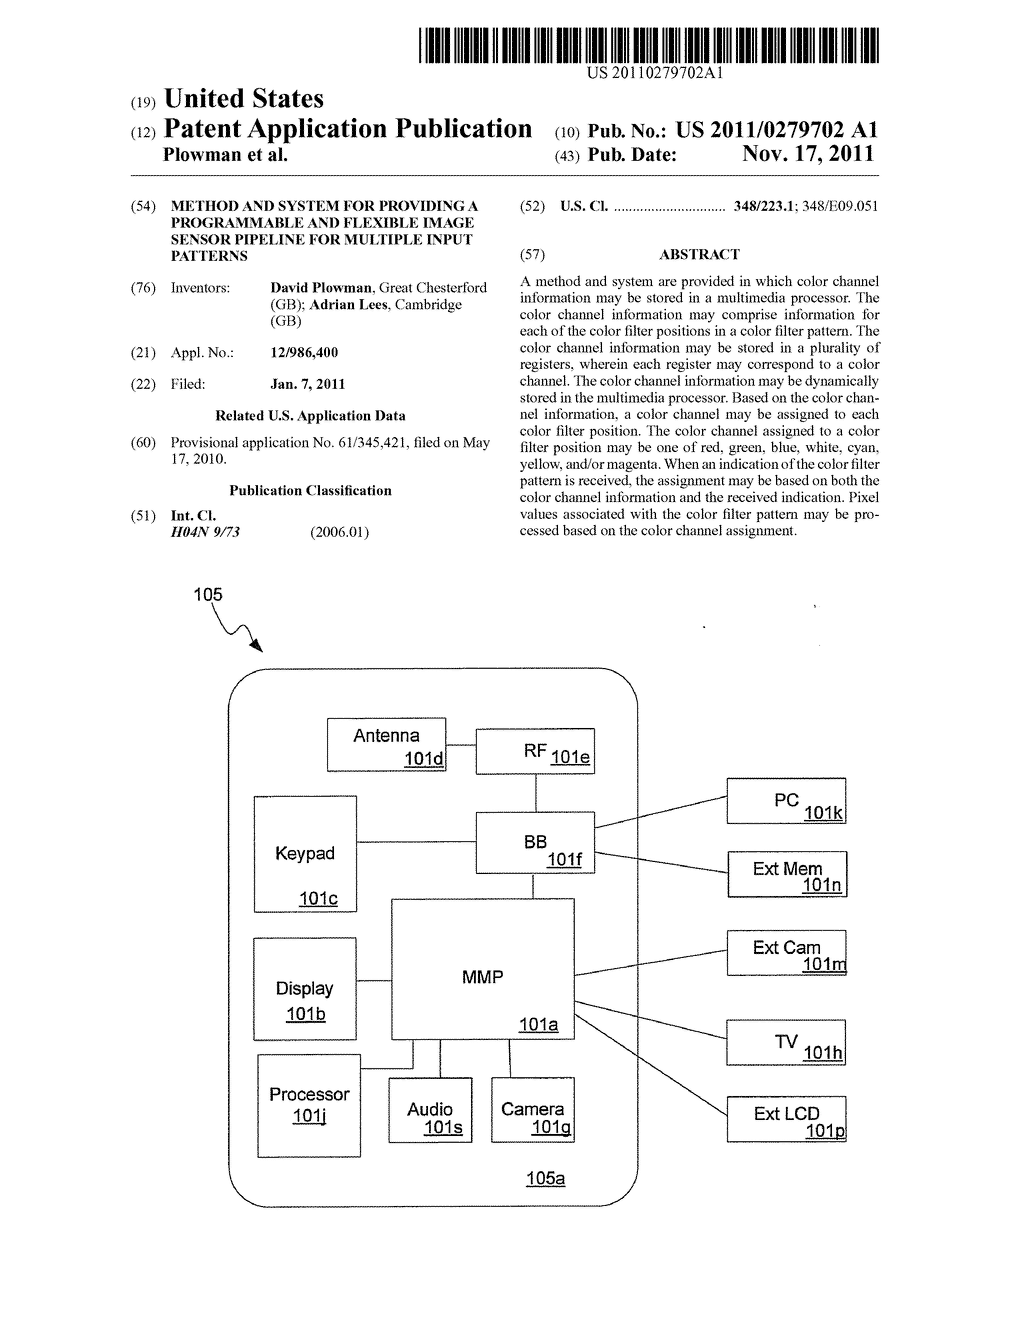 Method and System for Providing a Programmable and Flexible Image Sensor     Pipeline for Multiple Input Patterns - diagram, schematic, and image 01